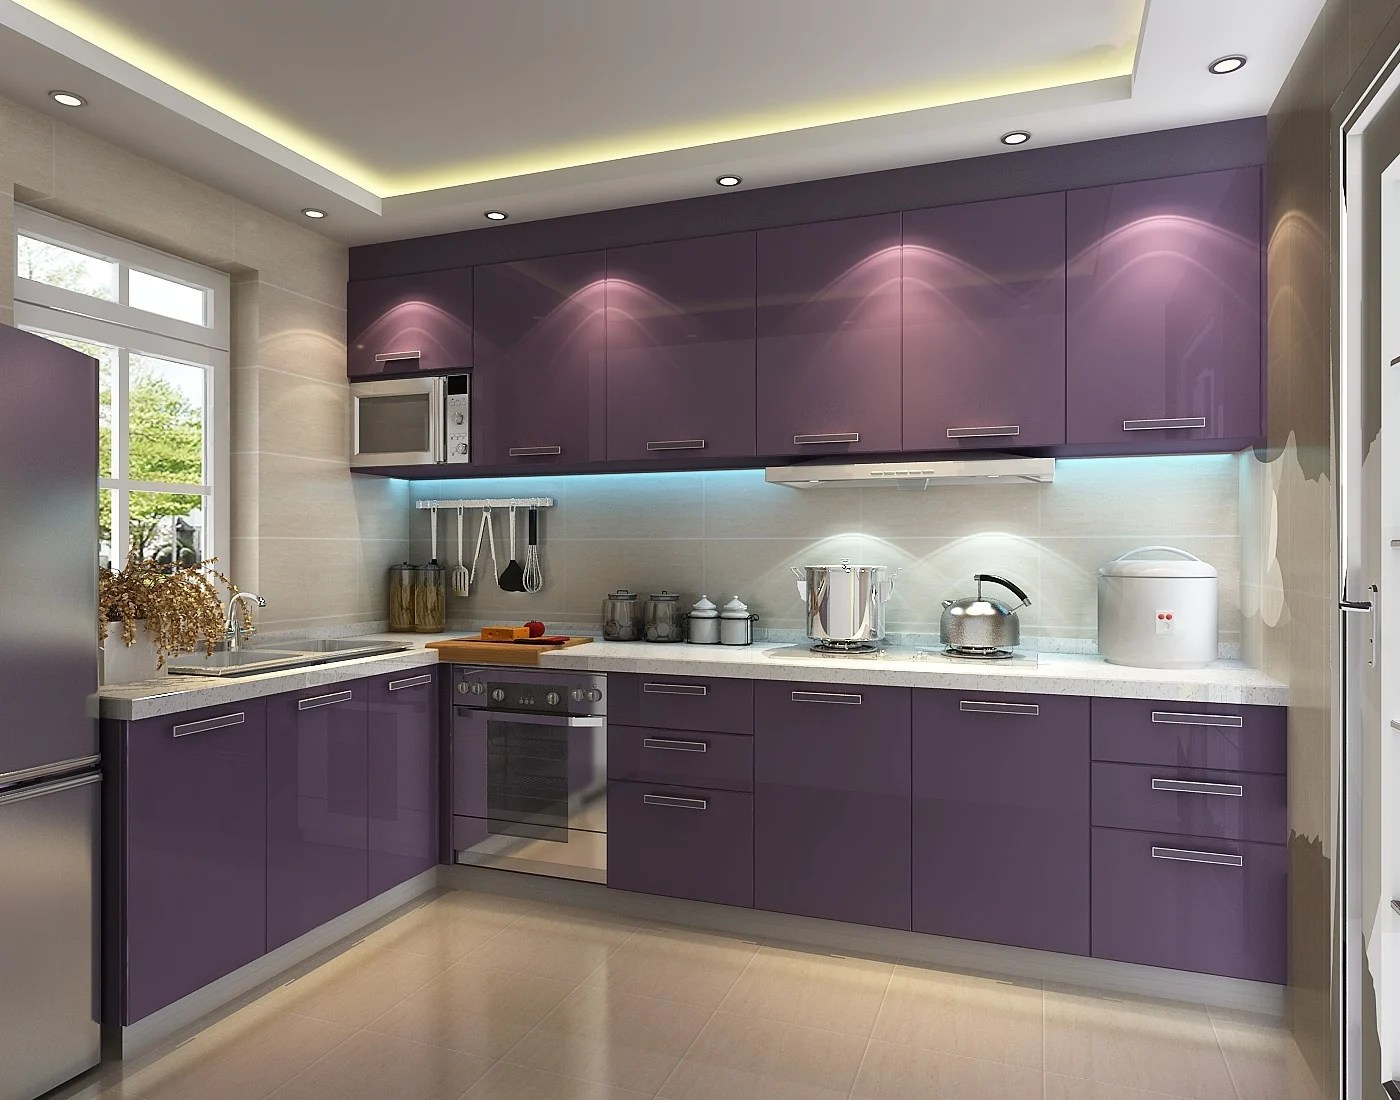 29 Kitchen Cabinet Ideas For Buying Guide